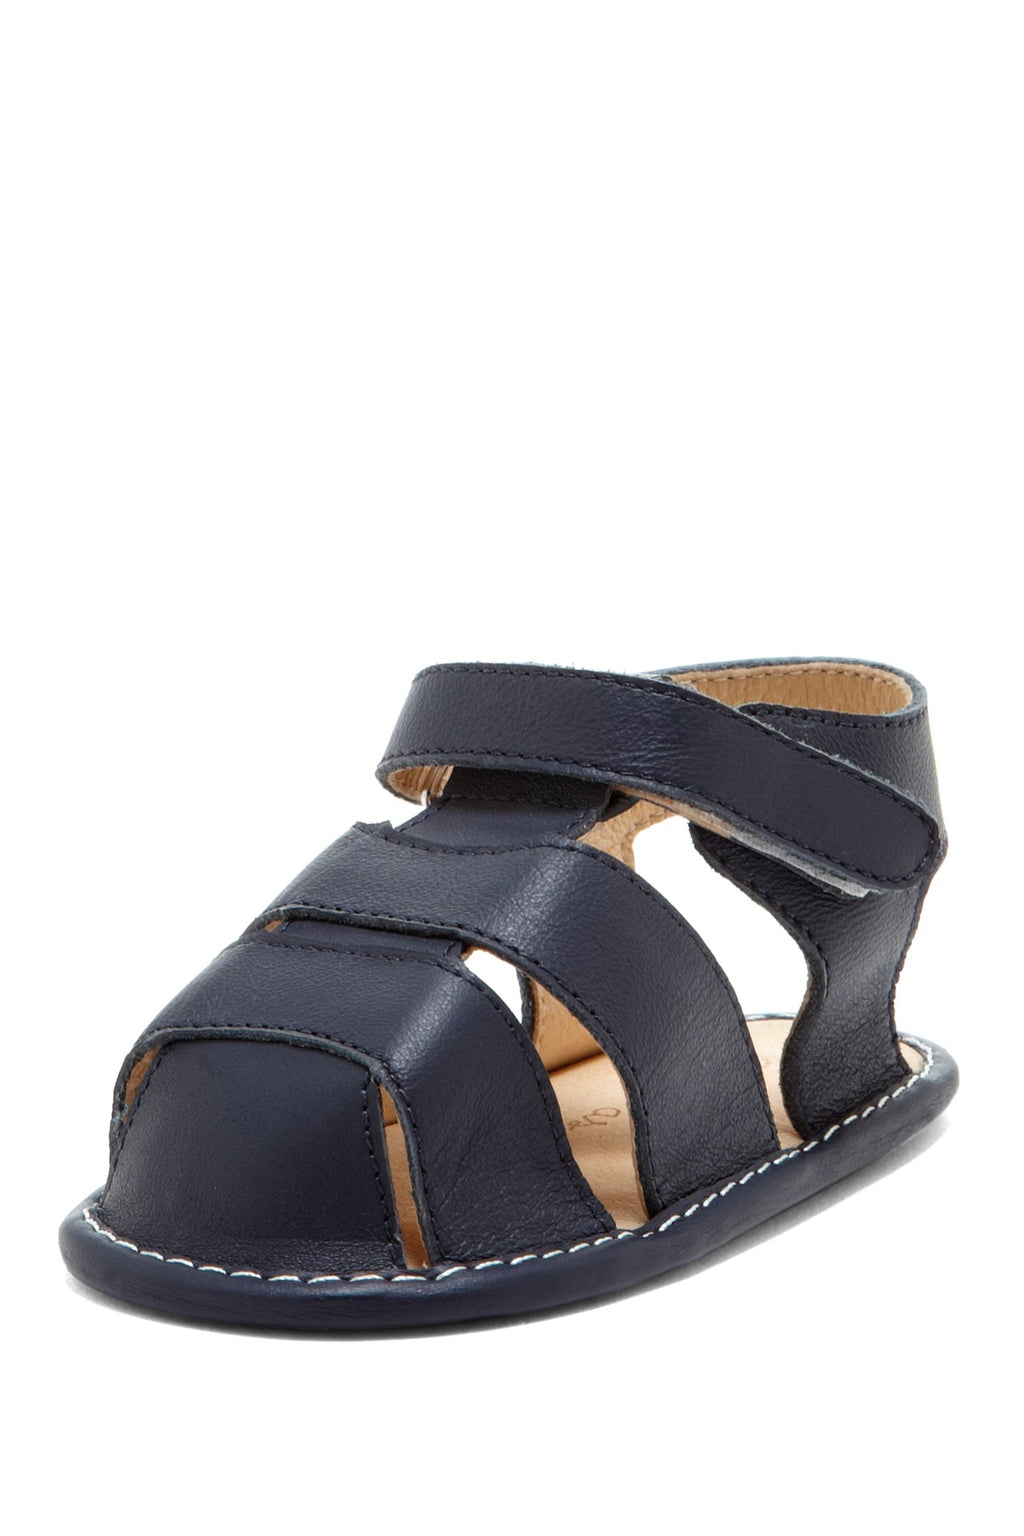 Navy Classic Fisherman Sandals